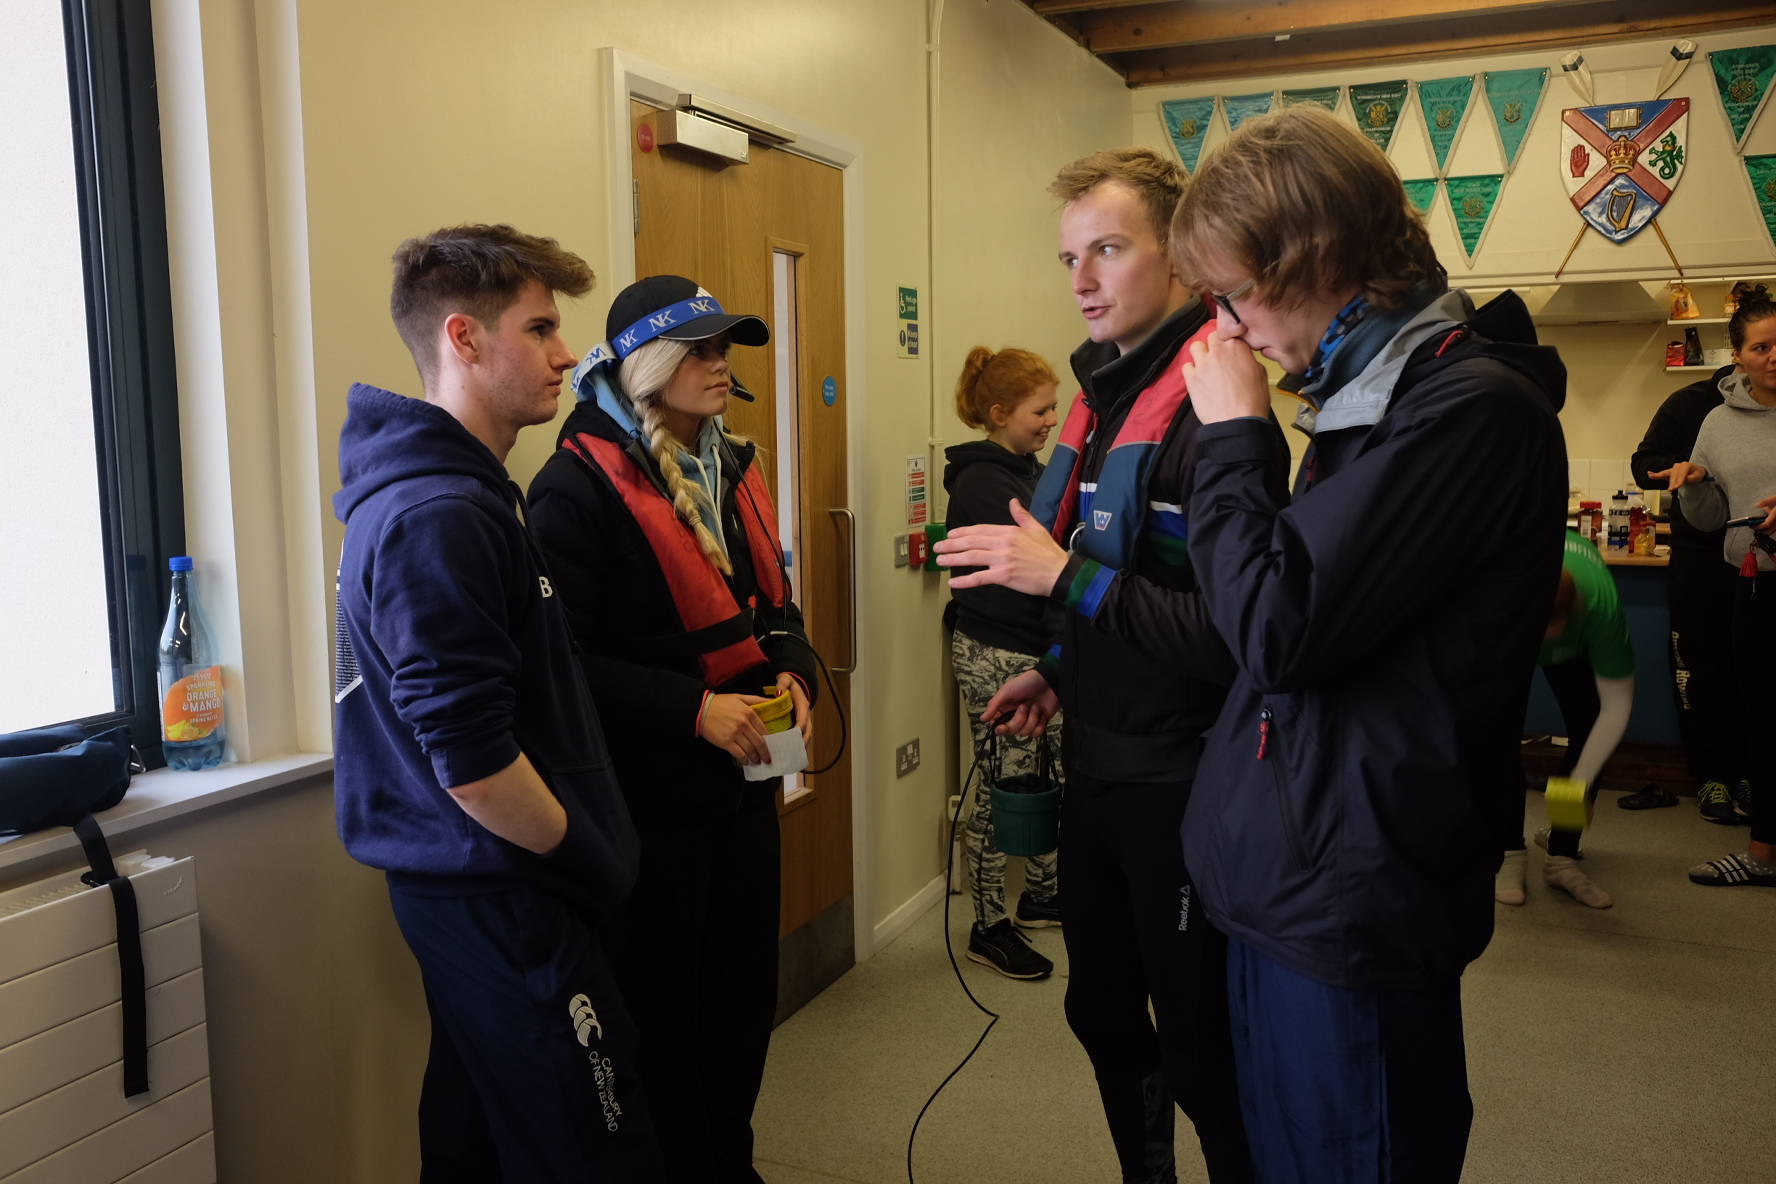 Ed Wilson briefs the coxes